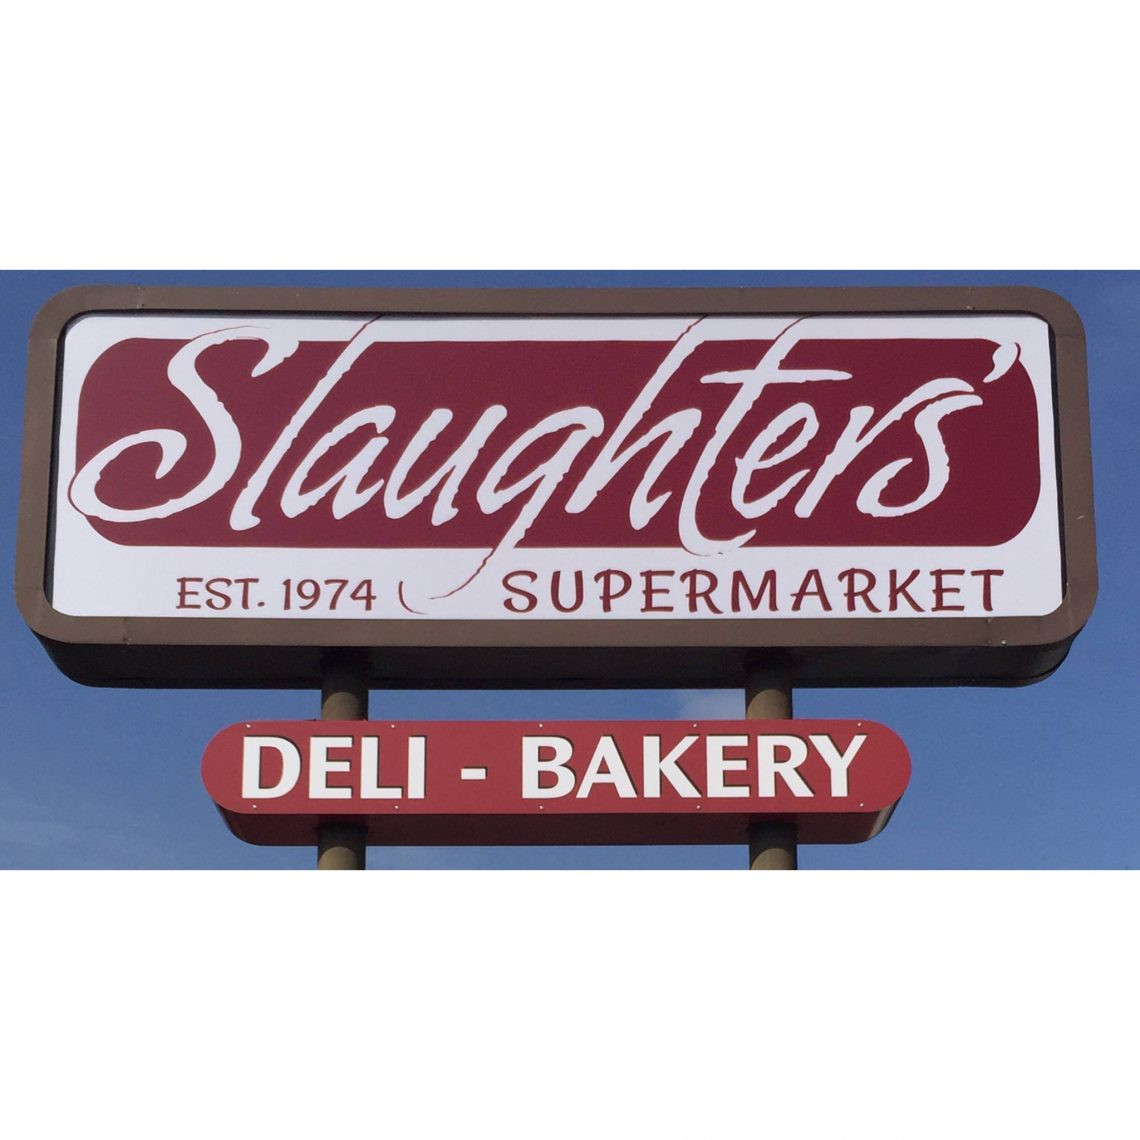 Slaughters Supermarket